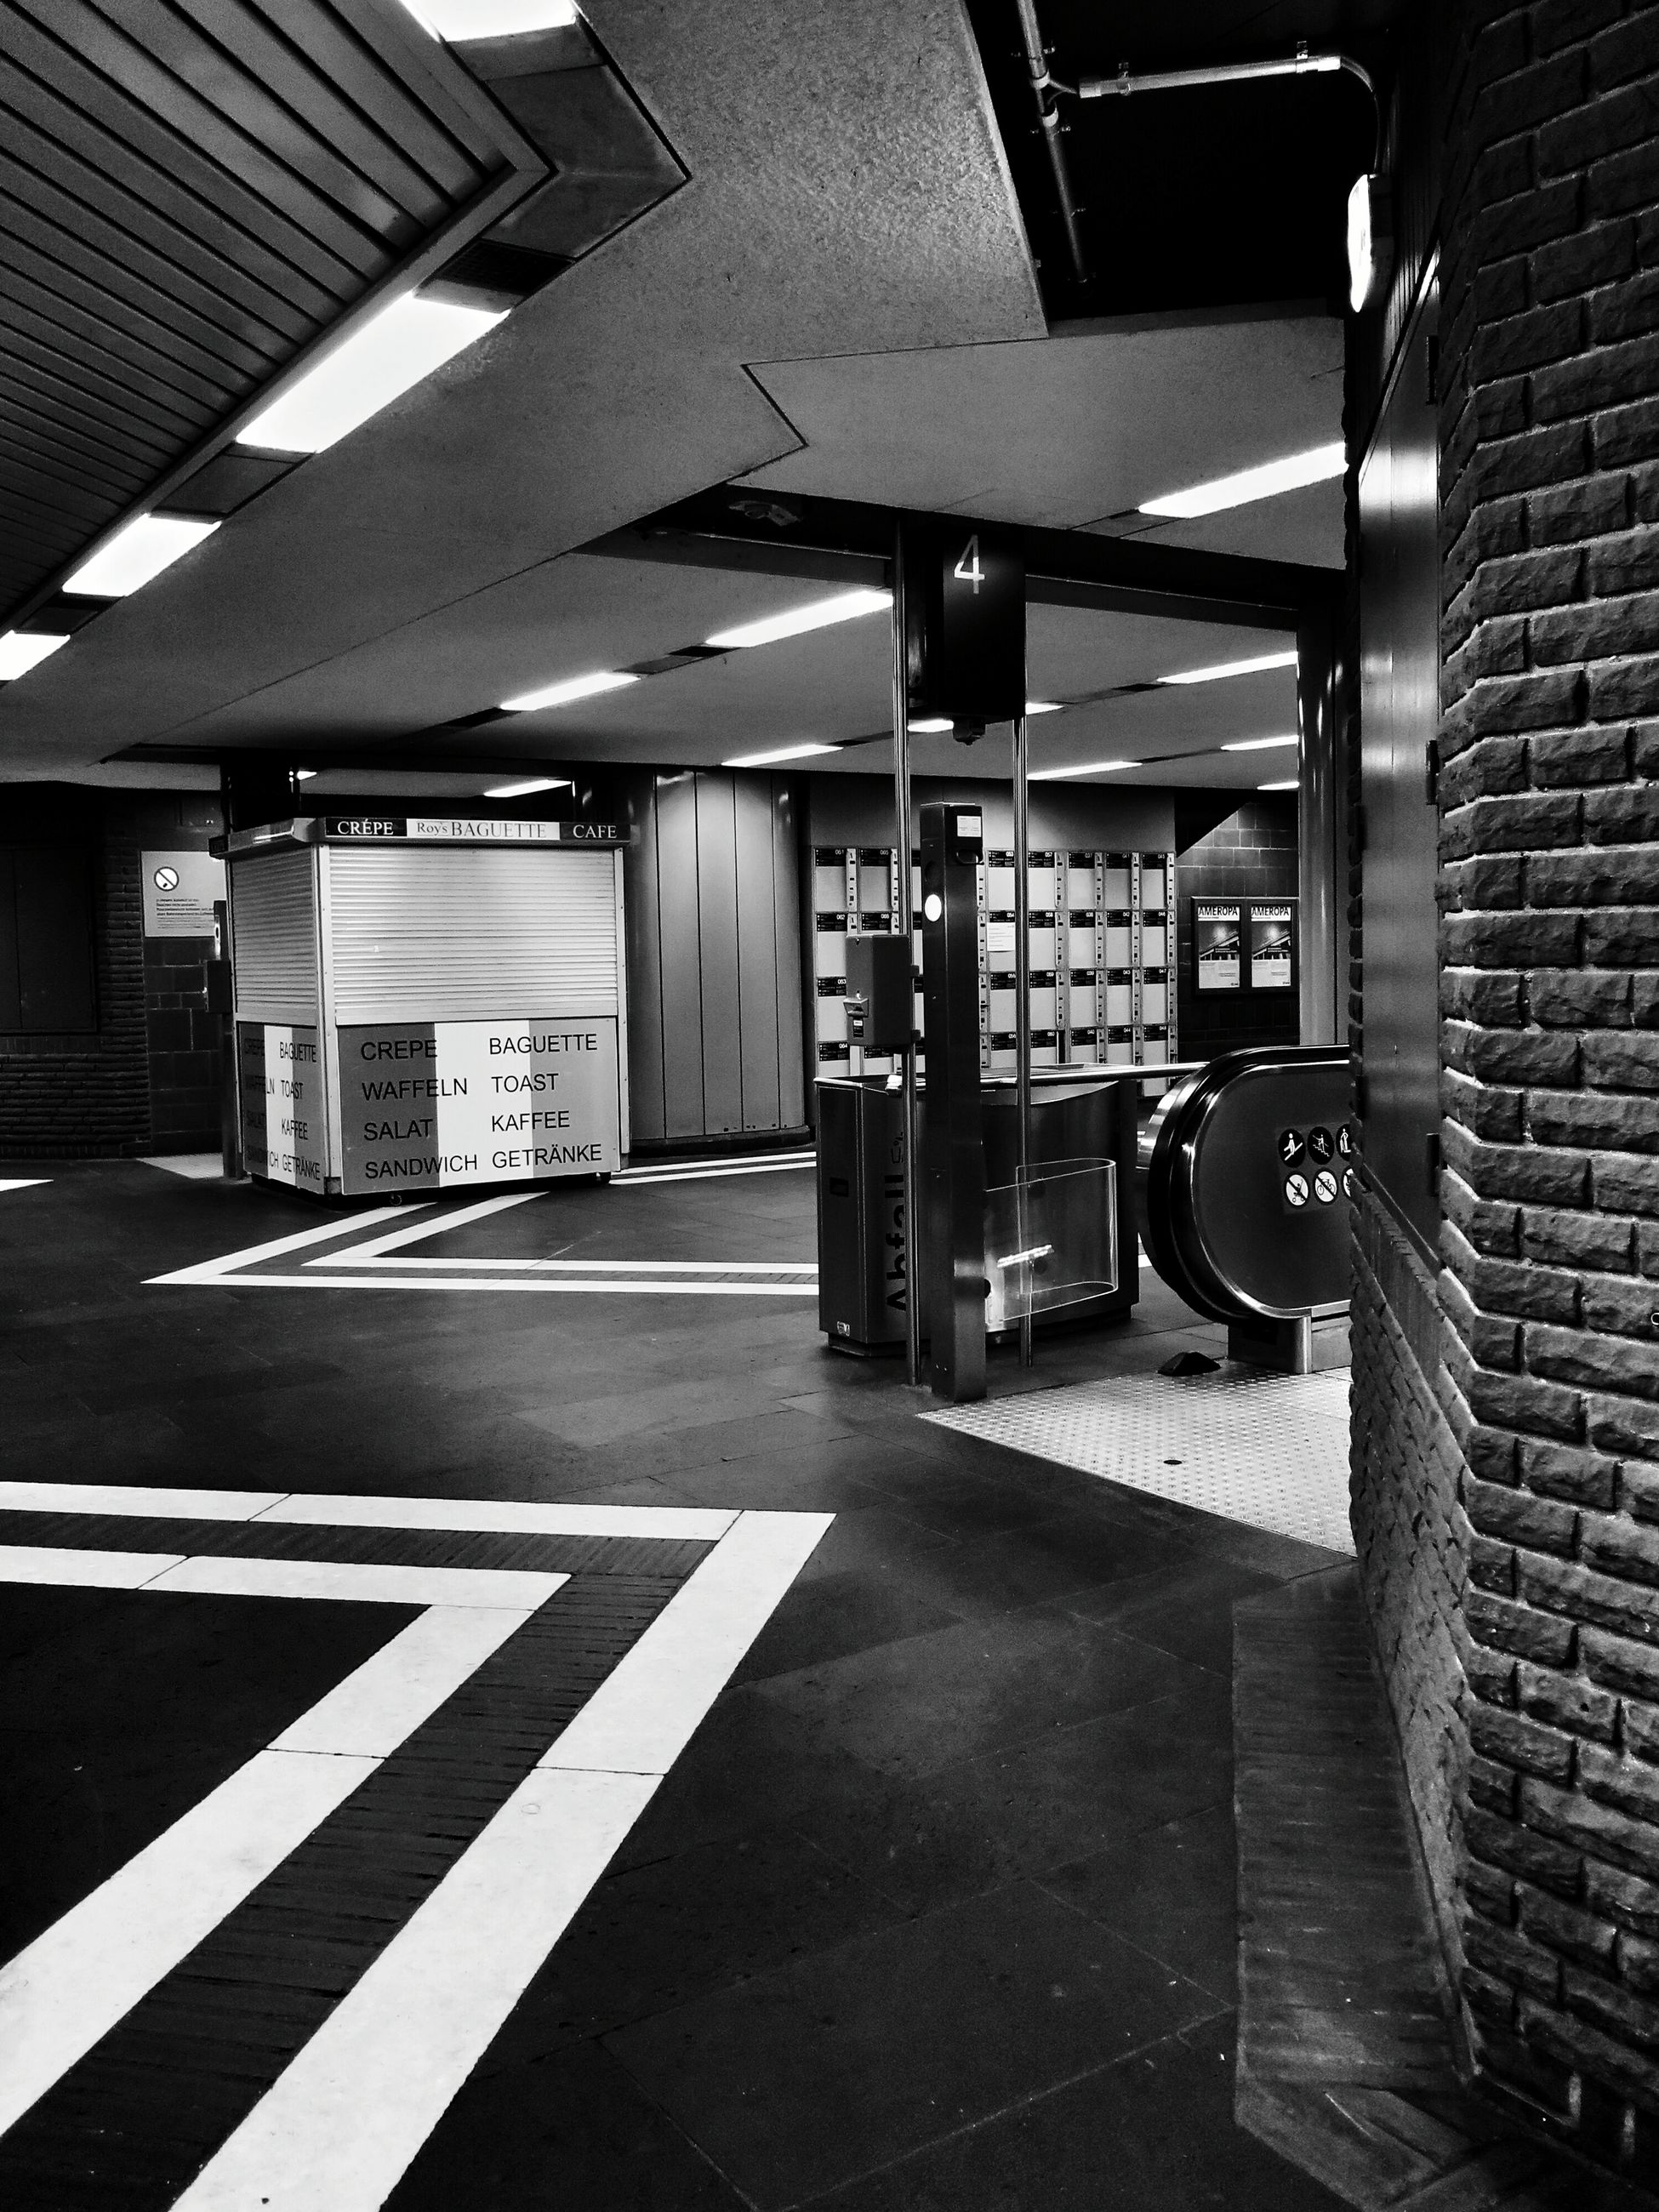 architecture, built structure, building exterior, city, empty, shadow, sunlight, the way forward, modern, building, indoors, city life, street, tiled floor, incidental people, day, transportation, absence, no people, road marking